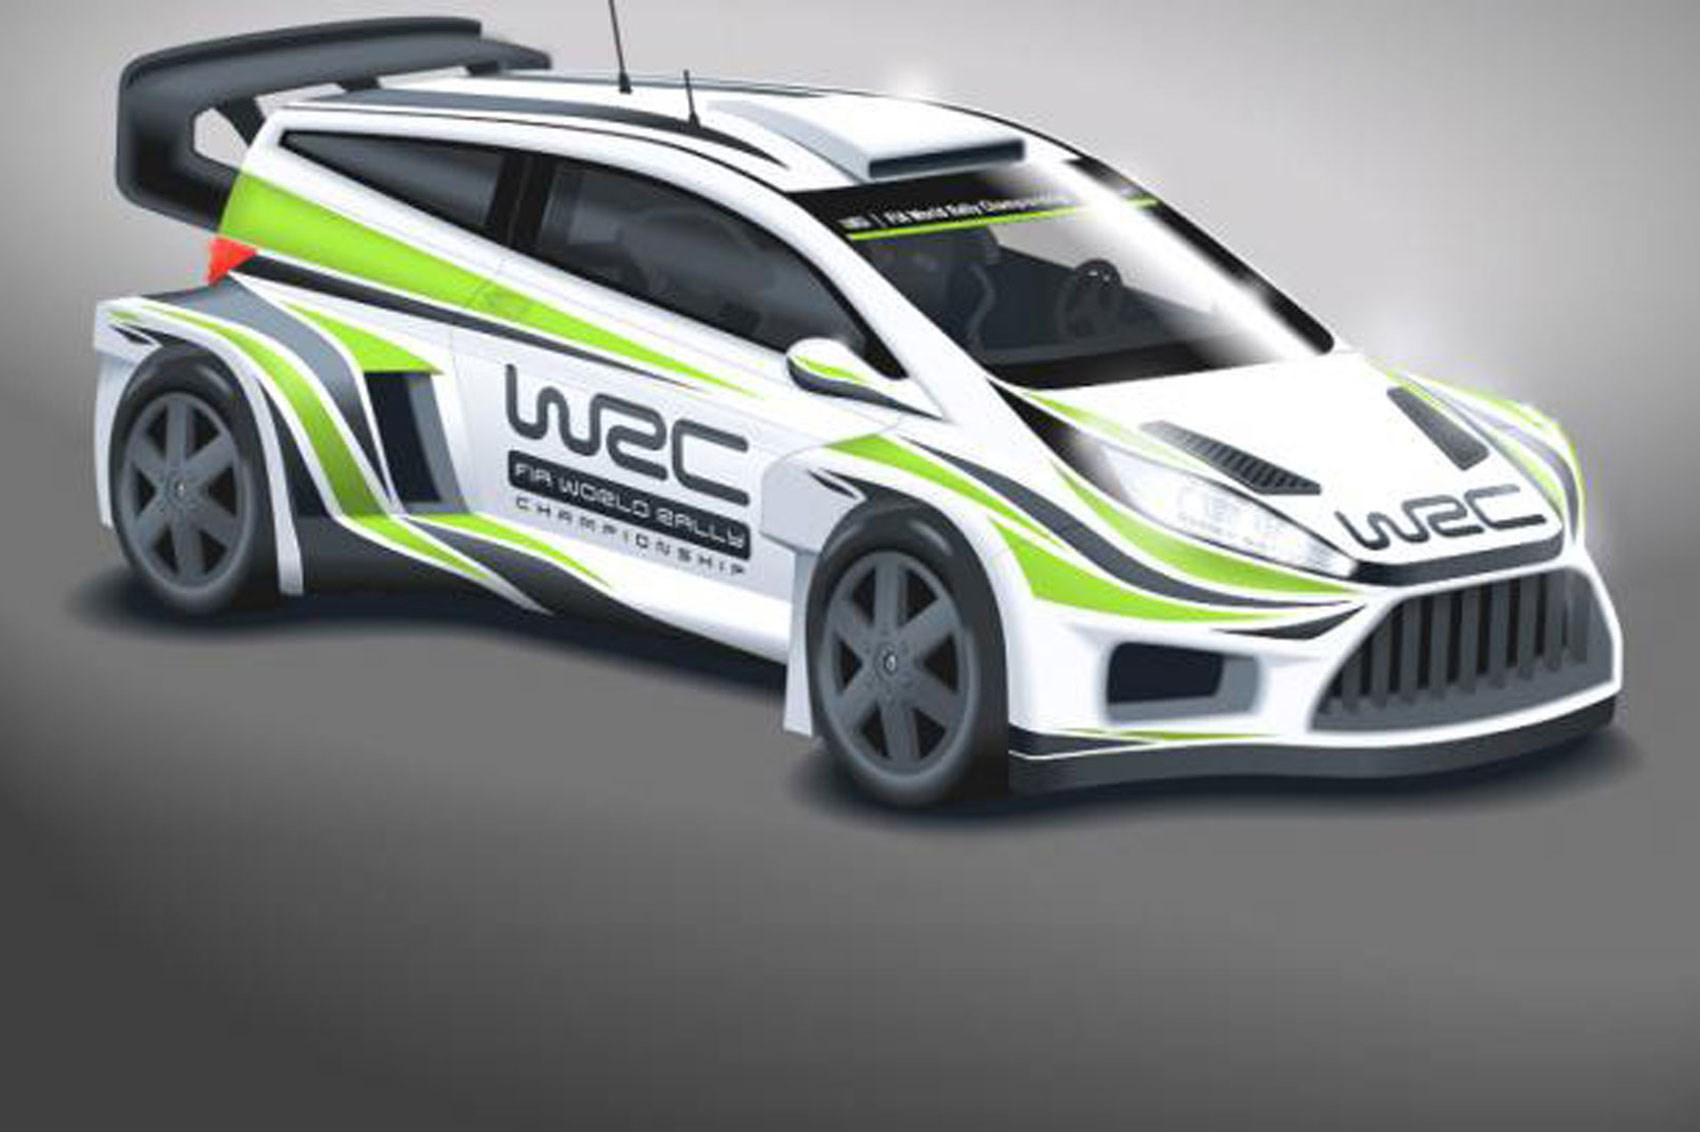 Ultrablogus  Gorgeous Wild New Look For Wrc Cars In  By Car Magazine With Great Wrc Cars Will Get Wider Bodies Bigger Wings And More Power For  With Beauteous Titan Interior Also Jeep Wrangler Interior Storage In Addition  Impala Interior And  Mustang Interior Parts As Well As Ford Granada Interior Additionally  Chevy C Interior From Carmagazinecouk With Ultrablogus  Great Wild New Look For Wrc Cars In  By Car Magazine With Beauteous Wrc Cars Will Get Wider Bodies Bigger Wings And More Power For  And Gorgeous Titan Interior Also Jeep Wrangler Interior Storage In Addition  Impala Interior From Carmagazinecouk